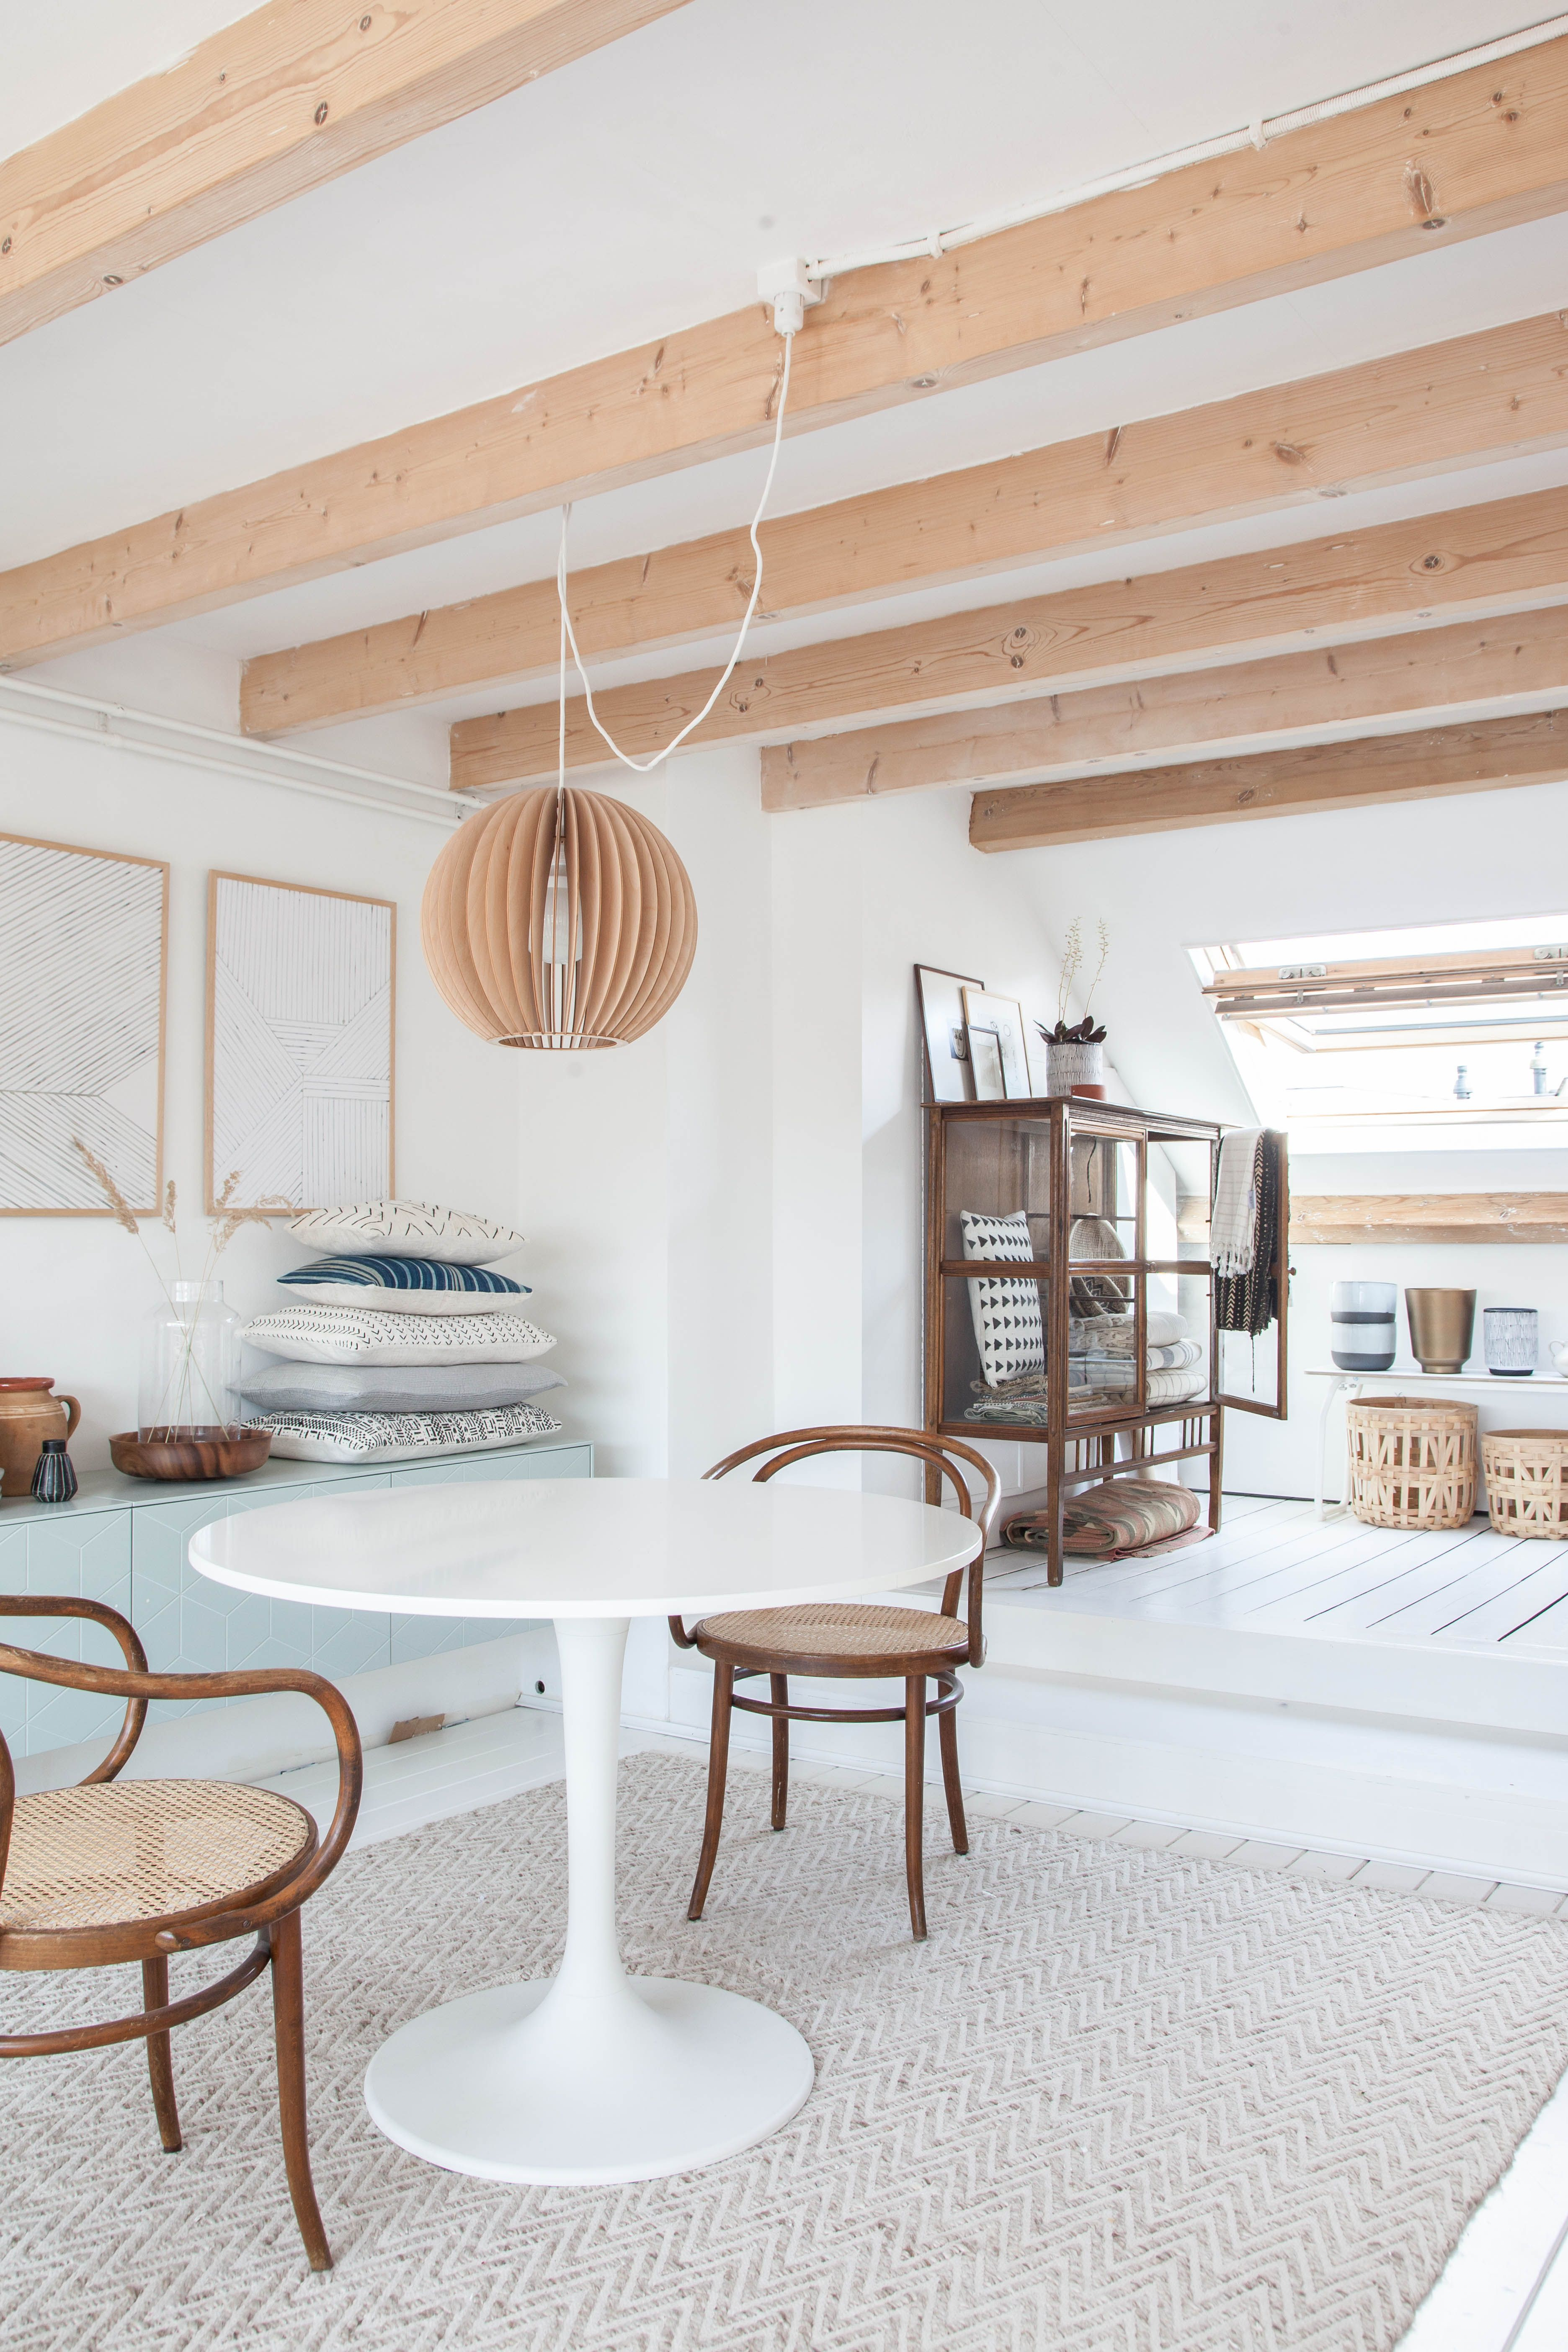 Gravity Home: Light Attic Home Office Of Interior Stylist Holly ...